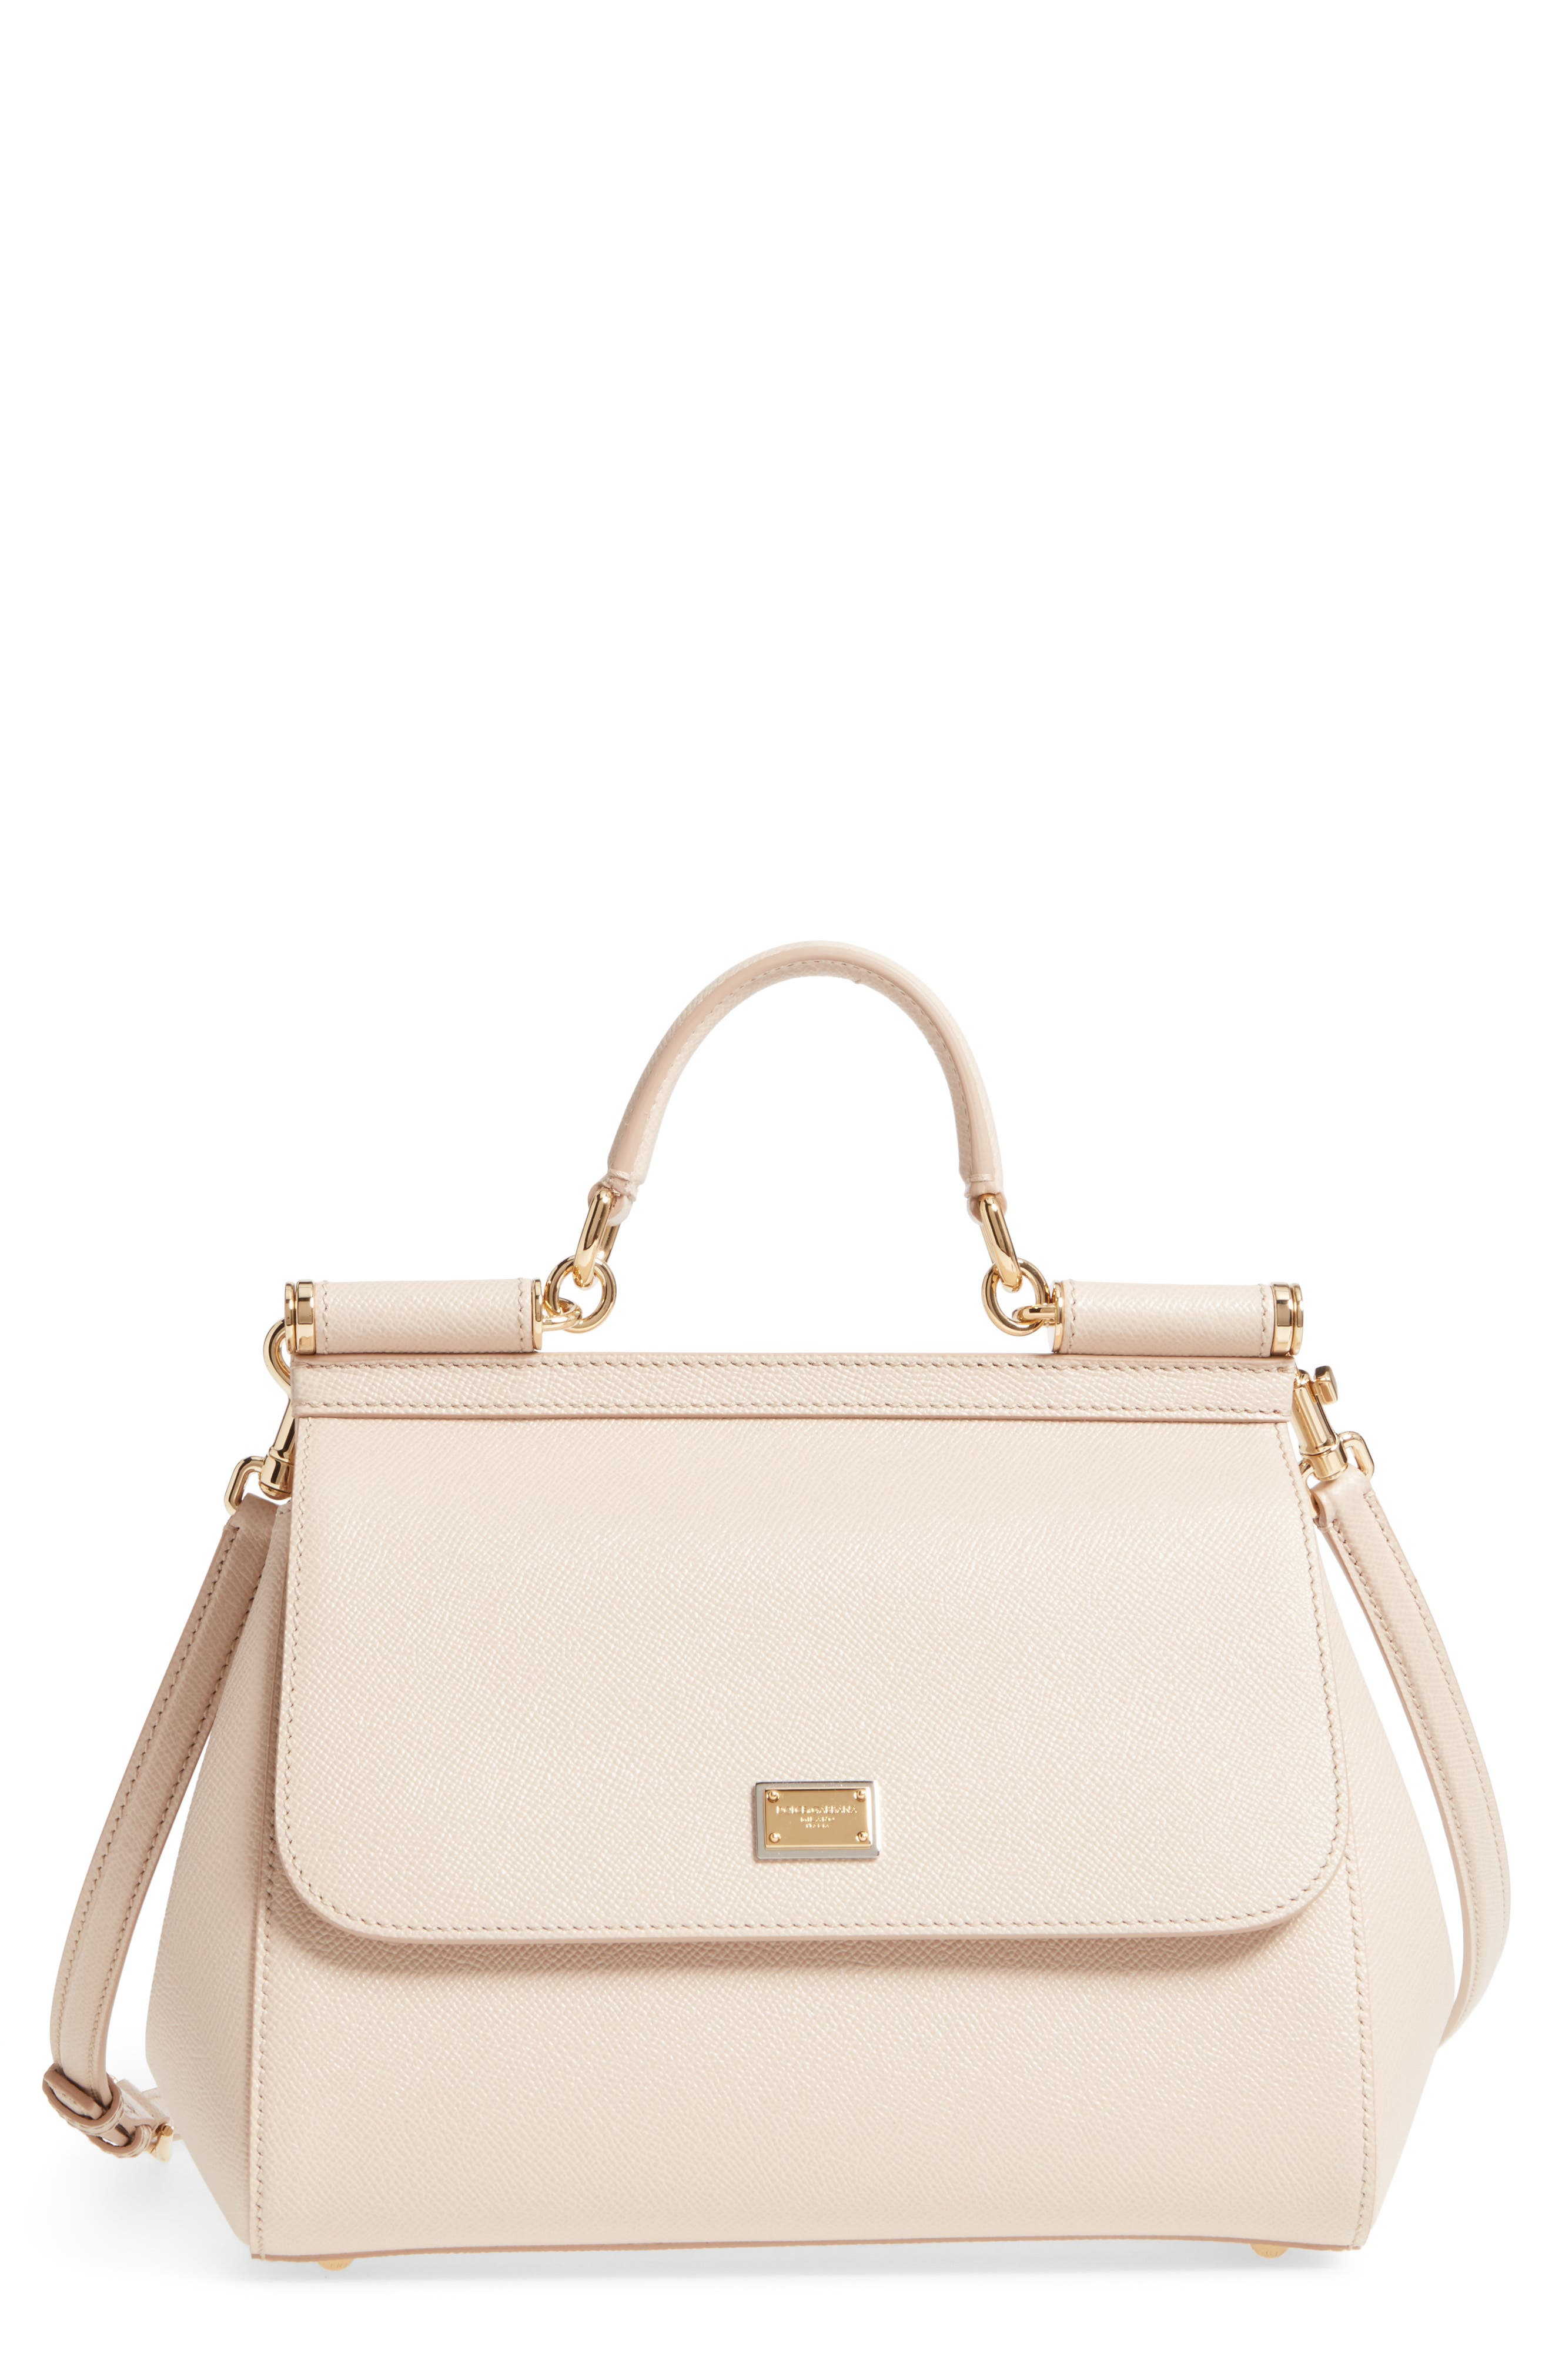 Dolce&Gabbana 'Small Miss Sicily' Leather Satchel